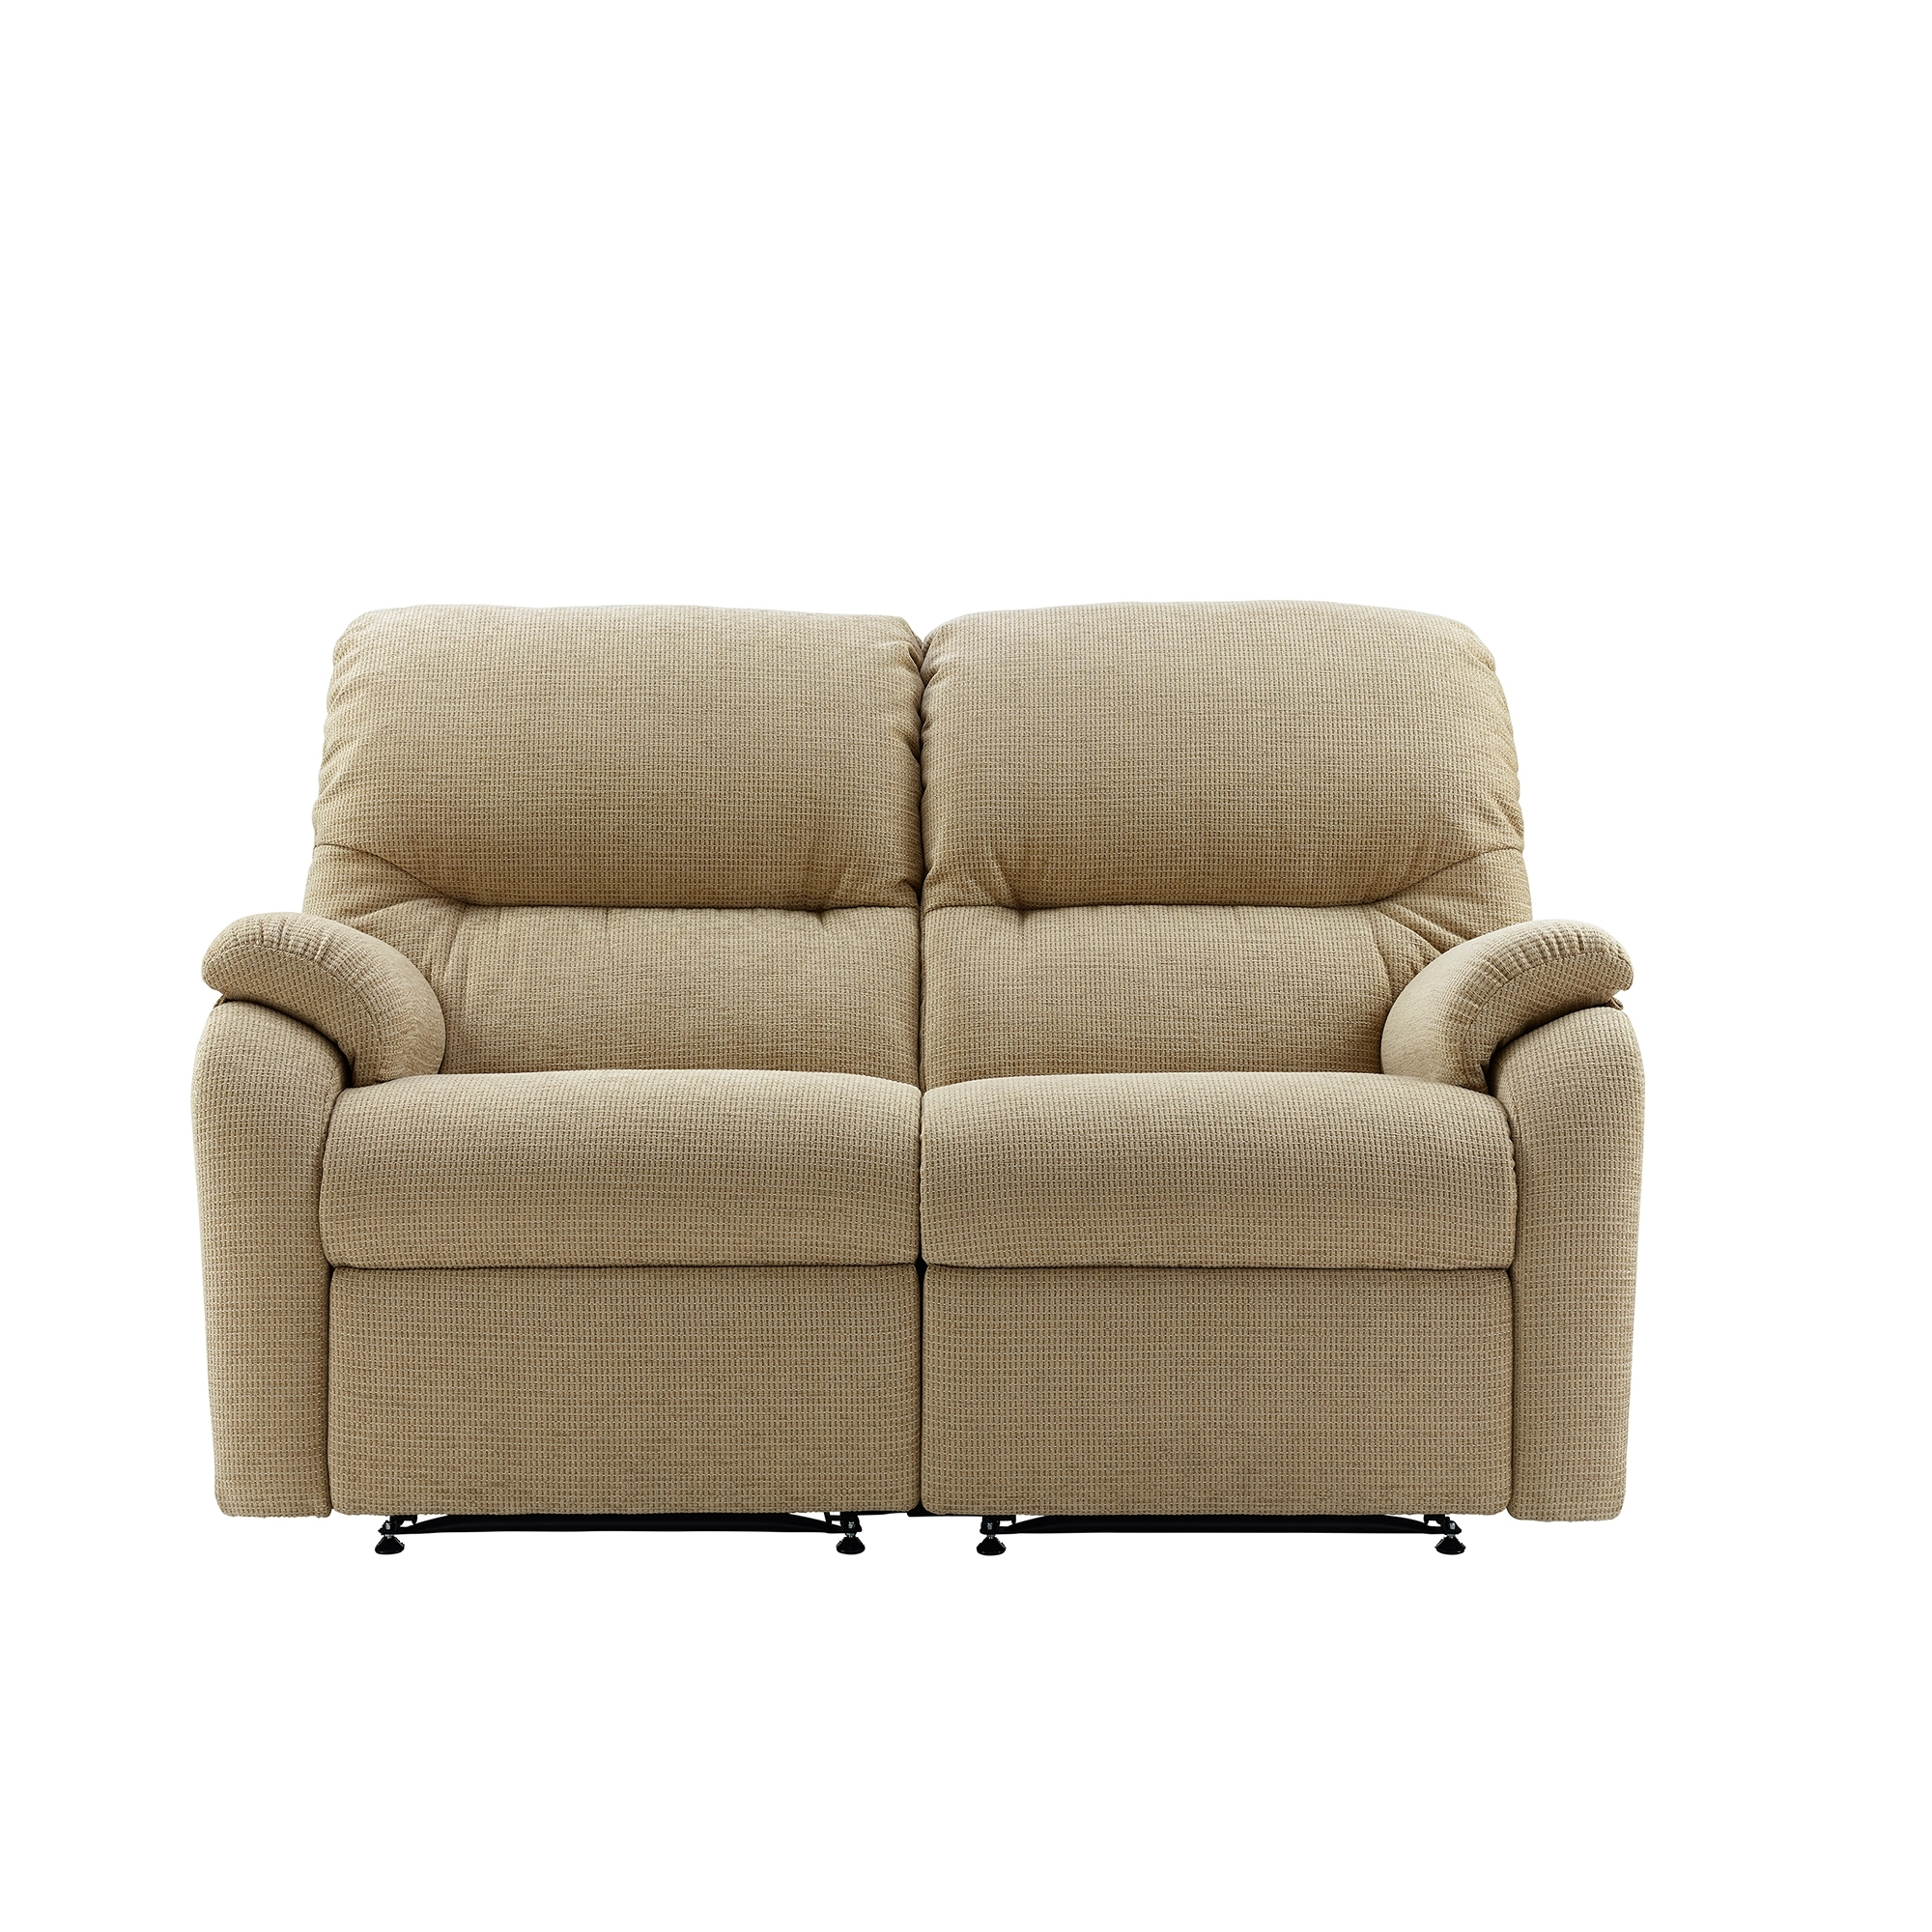 G Plan Mistral 2 Seater Double Power Recliner Sofa All